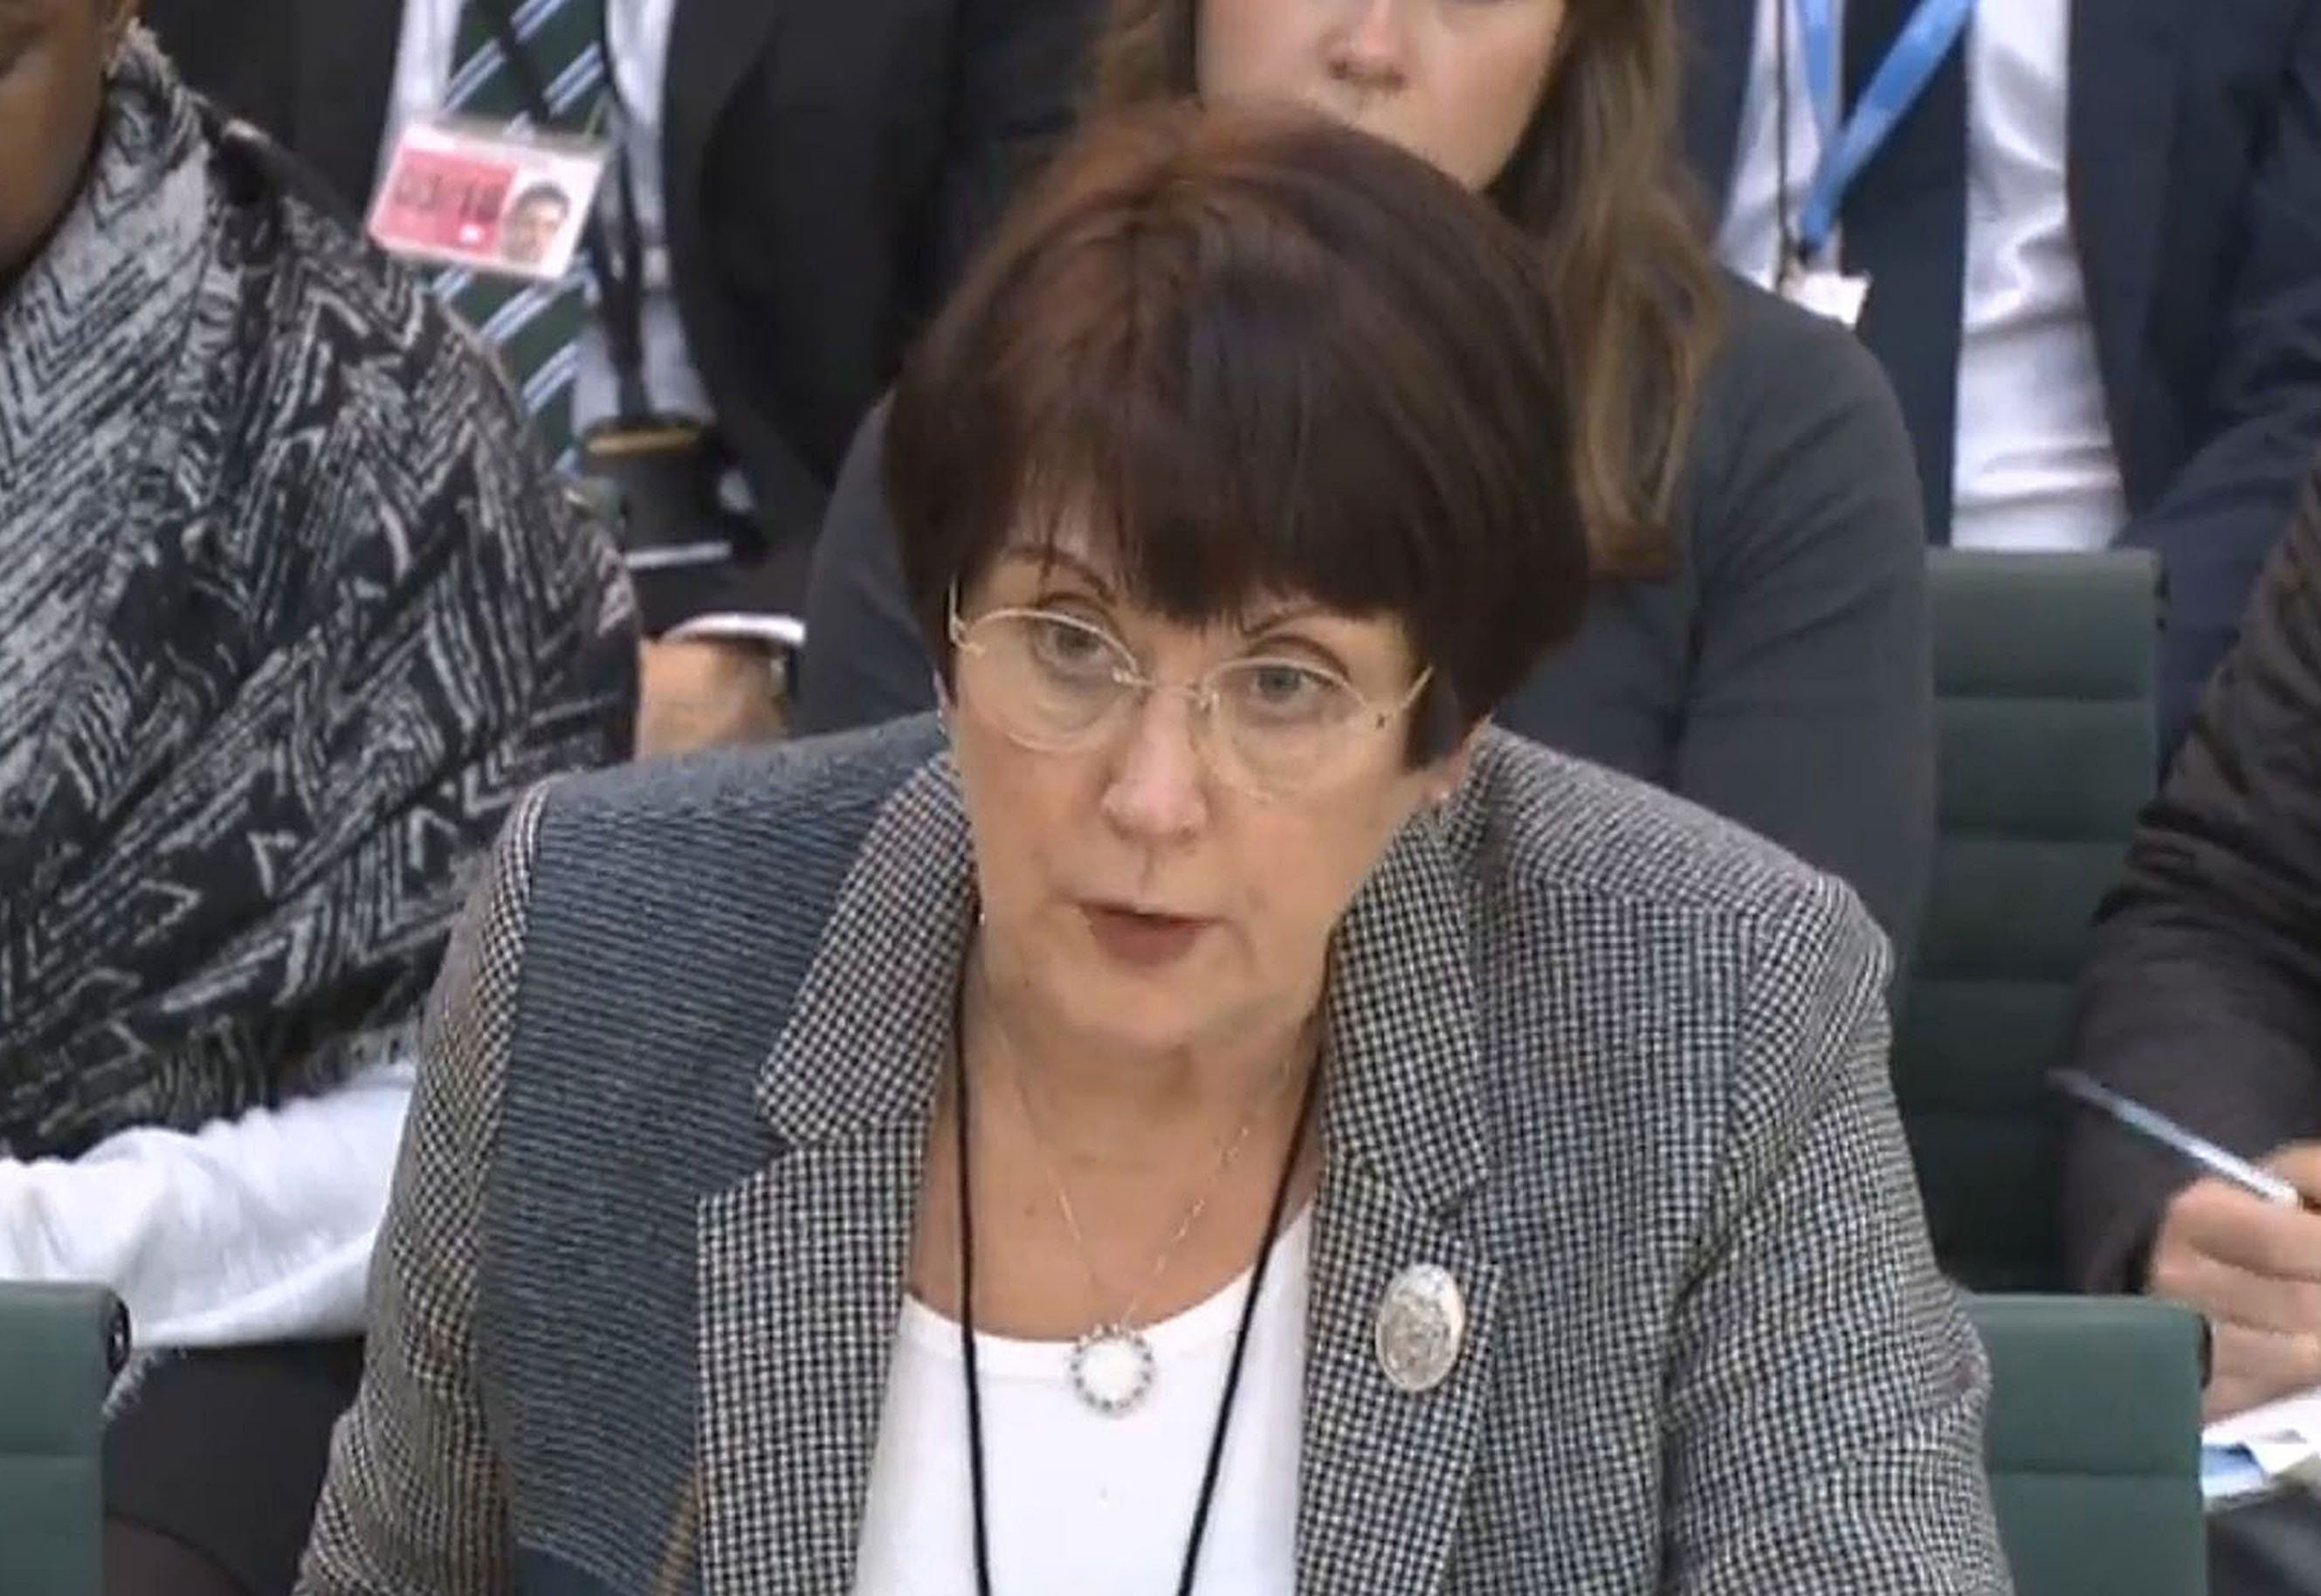 Head Of Building Safety Review Admits She 'Has Not Looked At Details' Of Grenfell